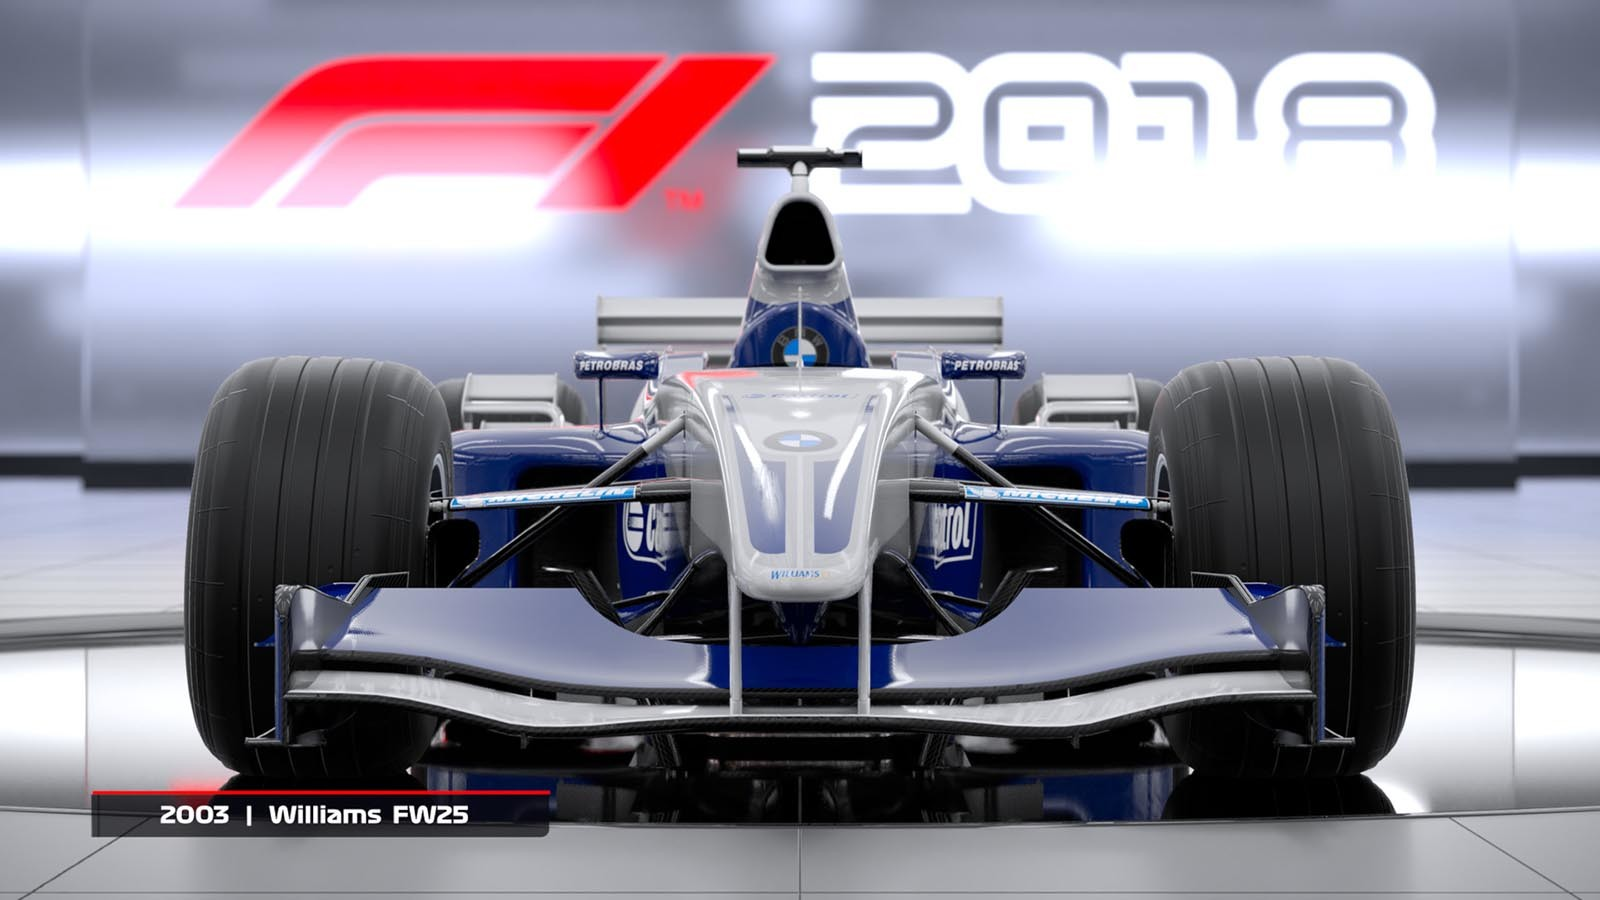 F1 2011 pc game product key | Steam Community :: Guide